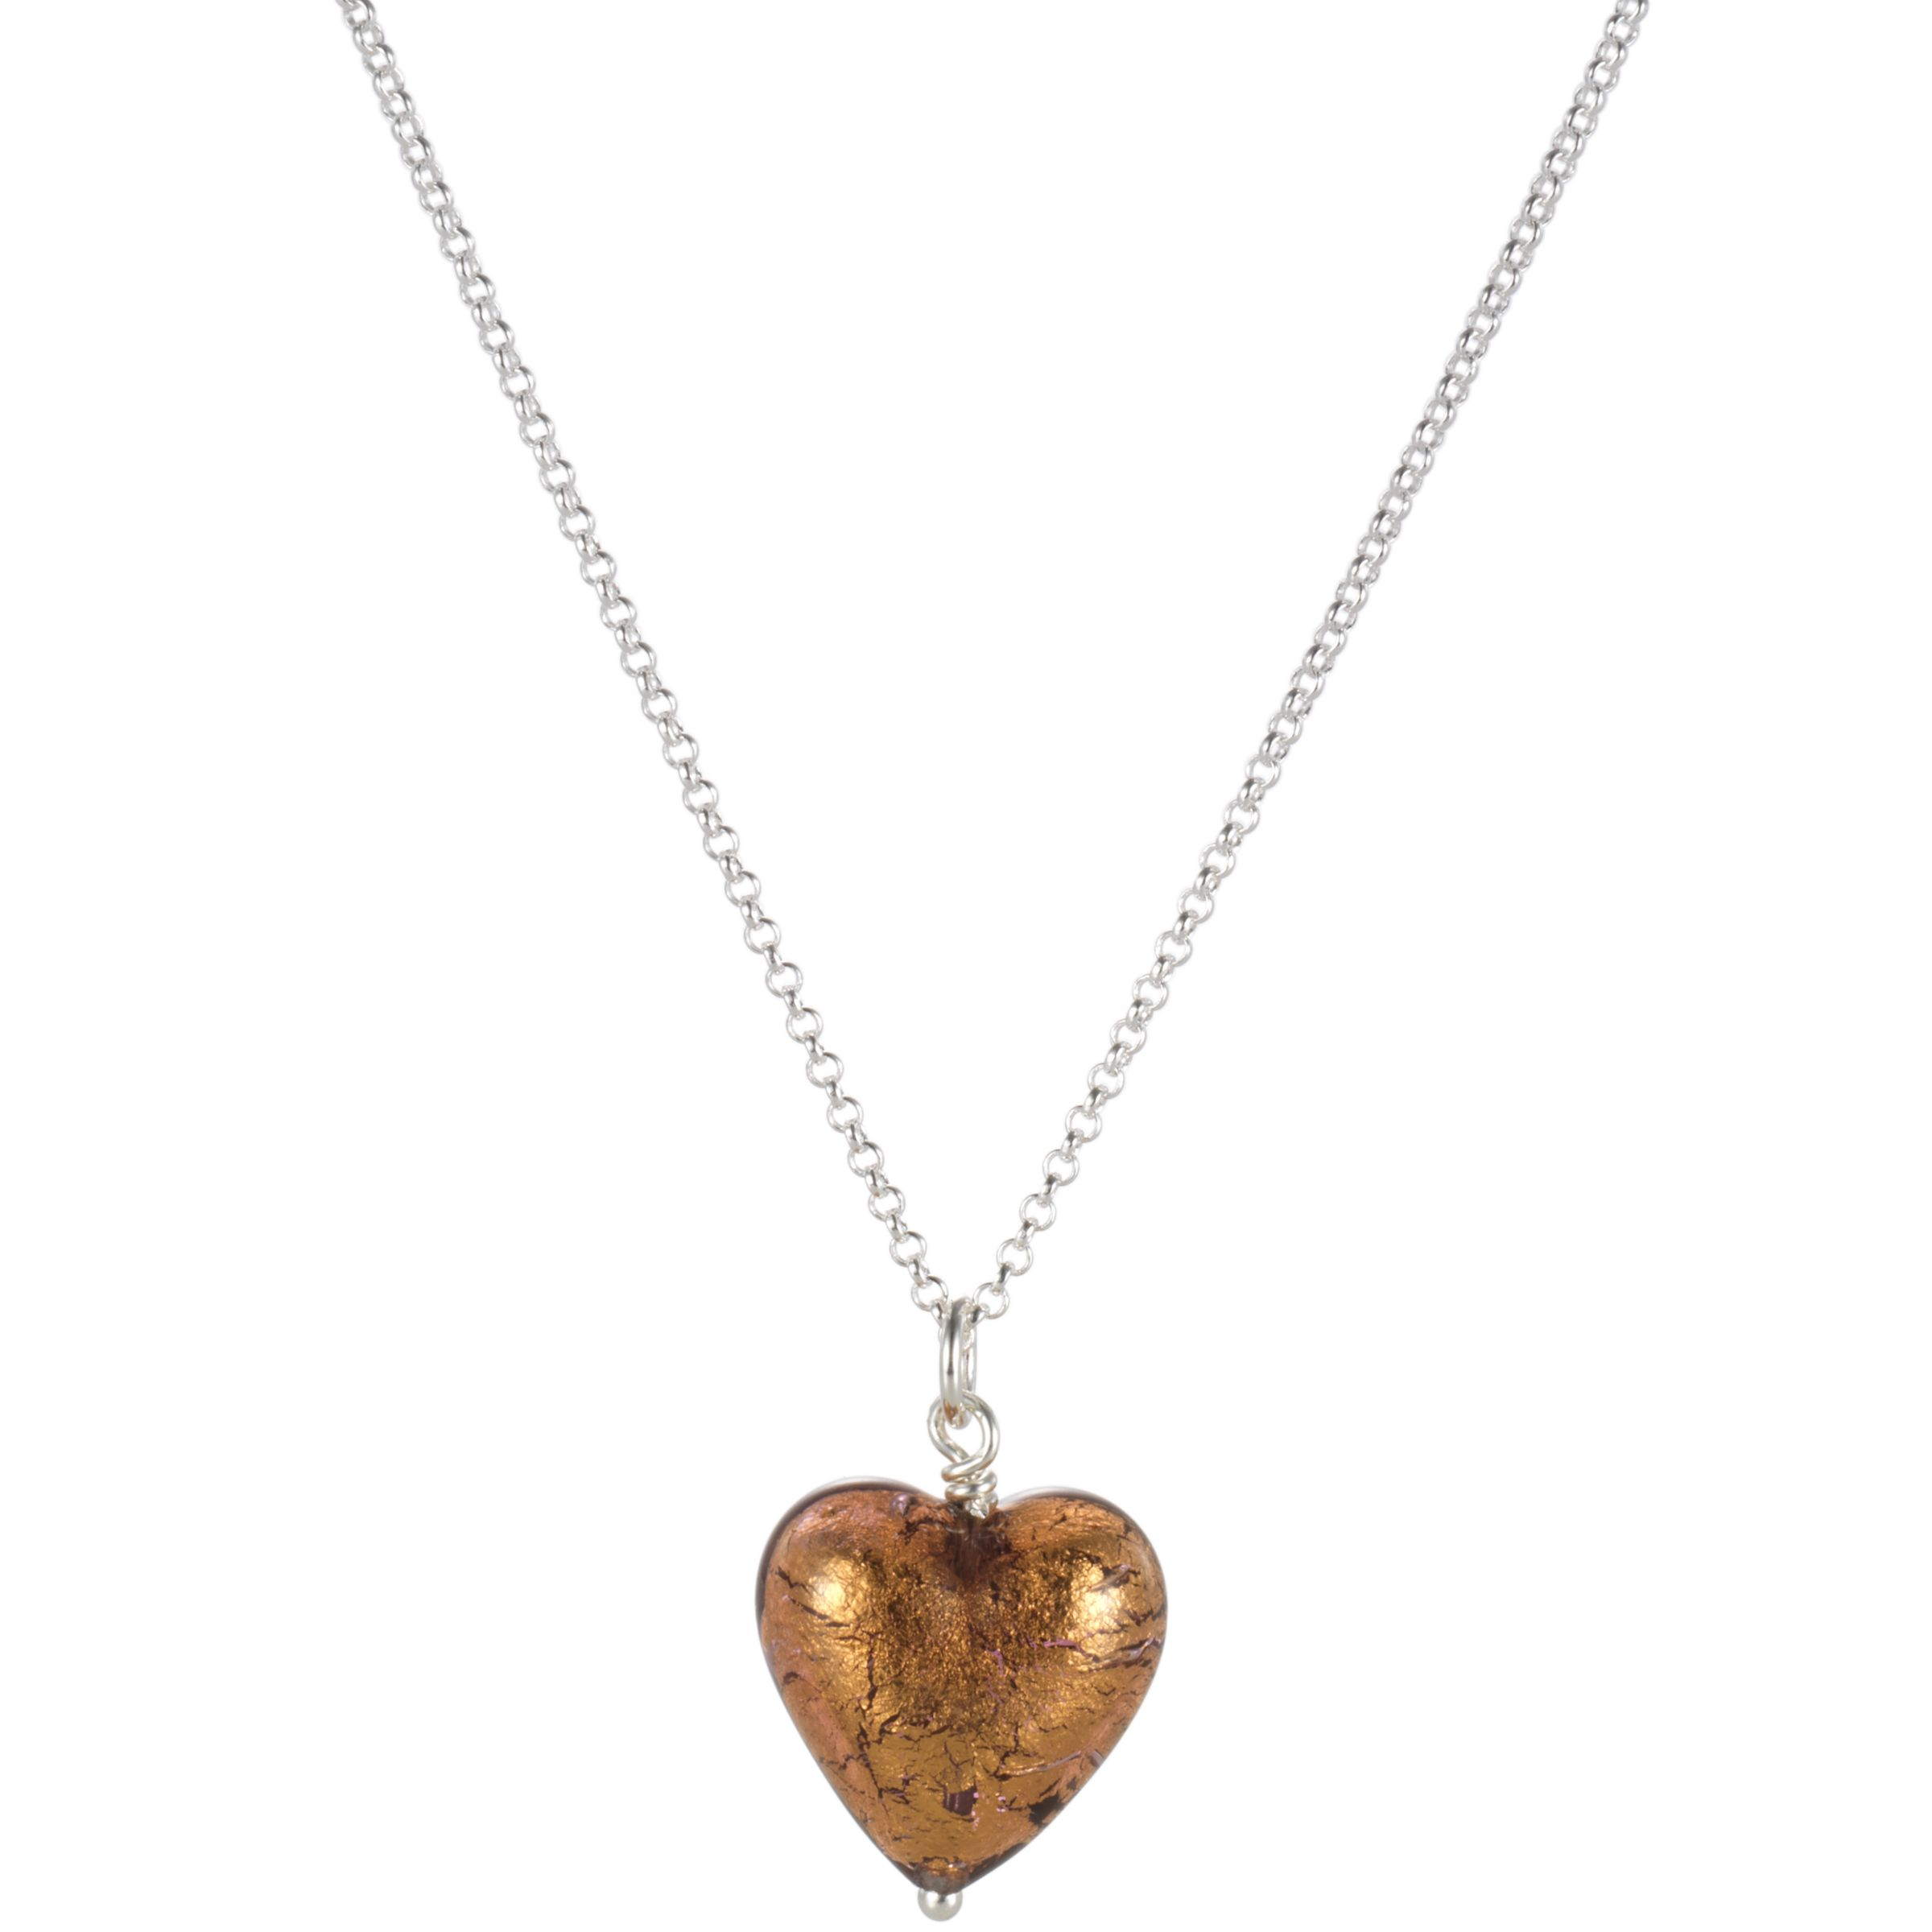 Martick Chocolate Murano Glass Heart Pendant Necklace